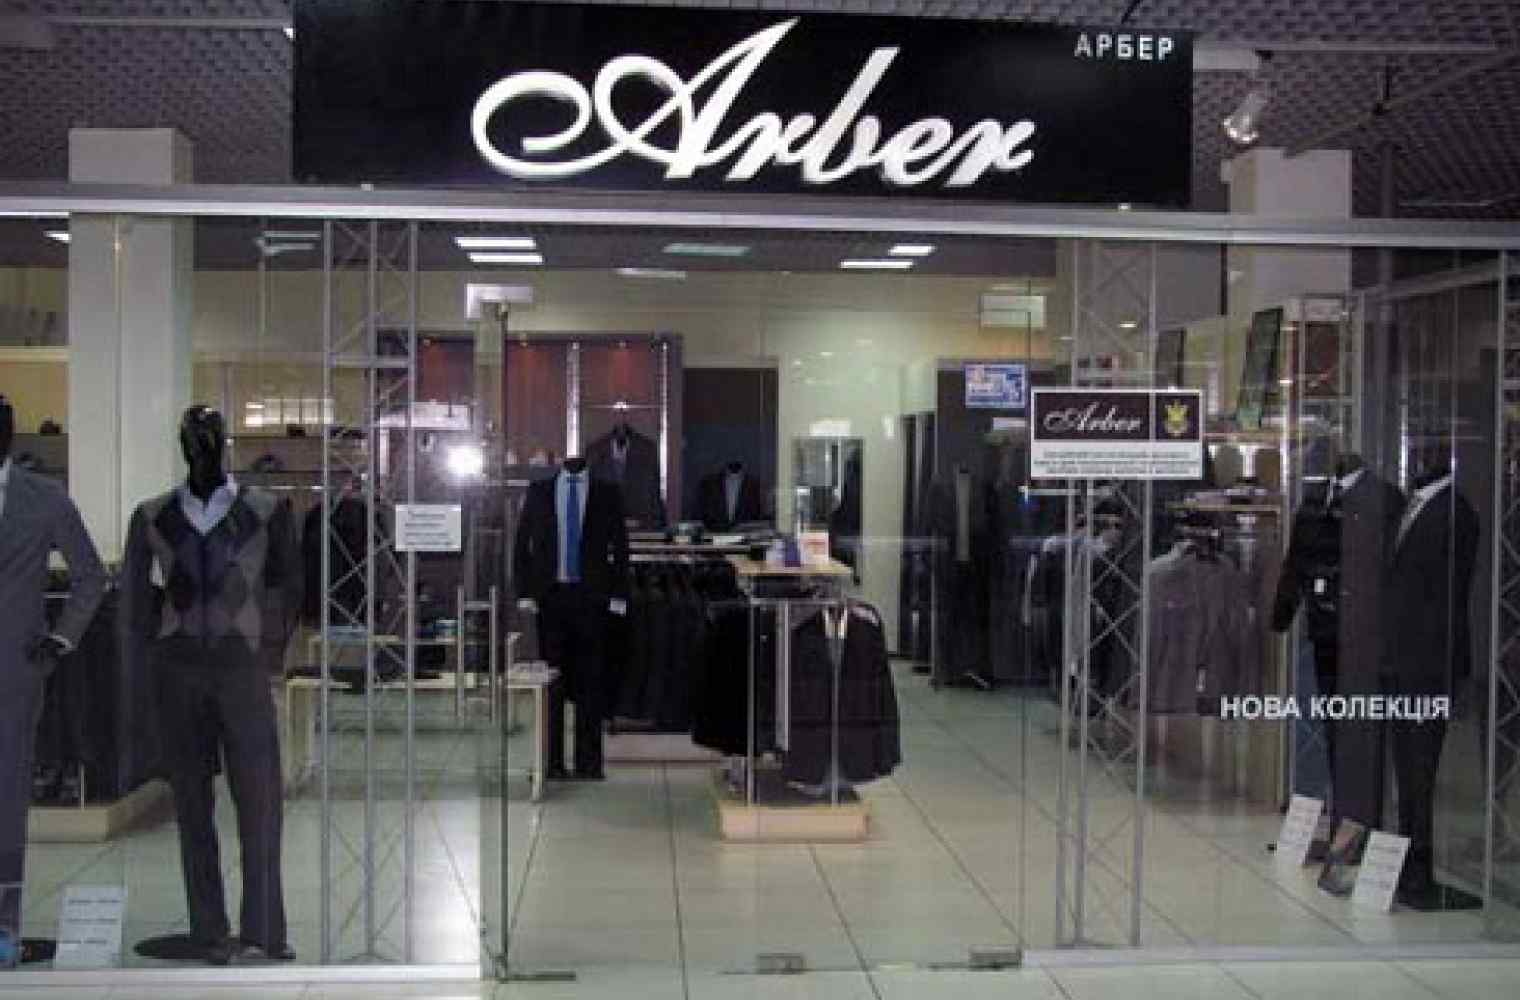 New concept Arber flagship shop will appear in Shopping and entertainment center Respublika